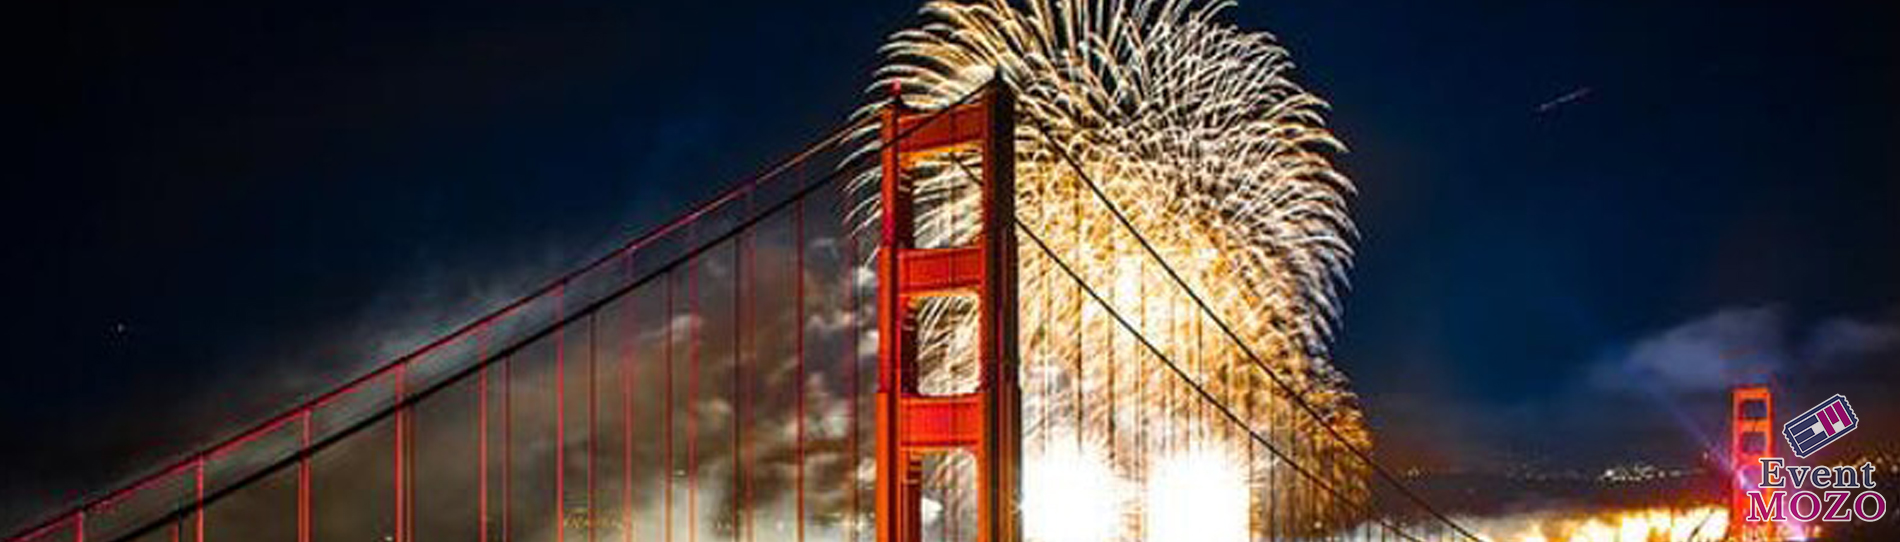 sf fireworks 4th of july